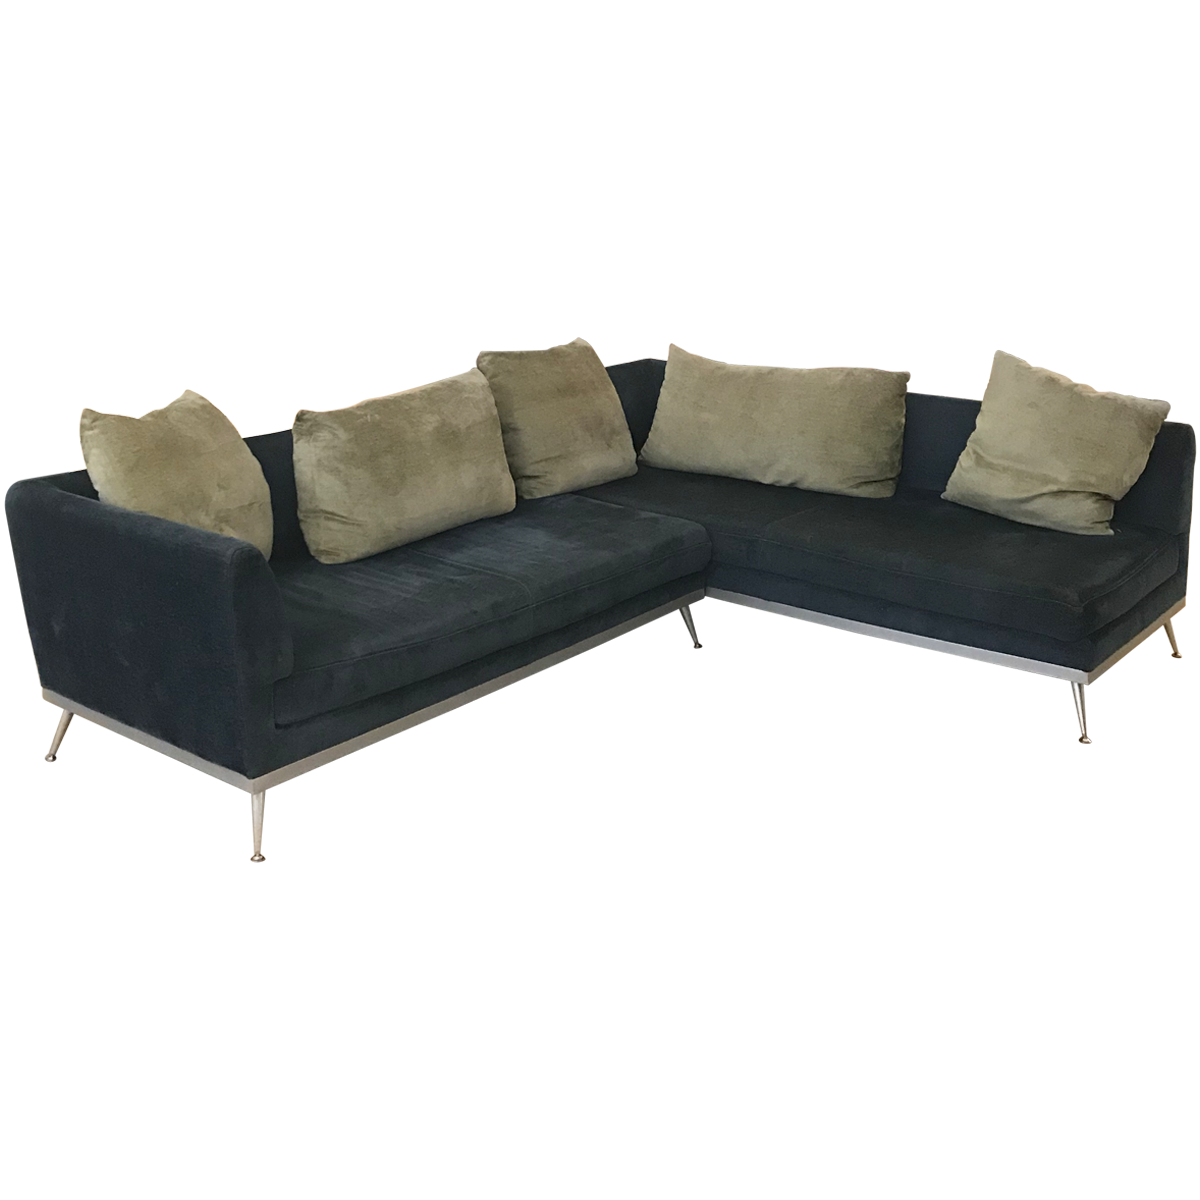 Sectional couch png. Viyet designer furniture seating